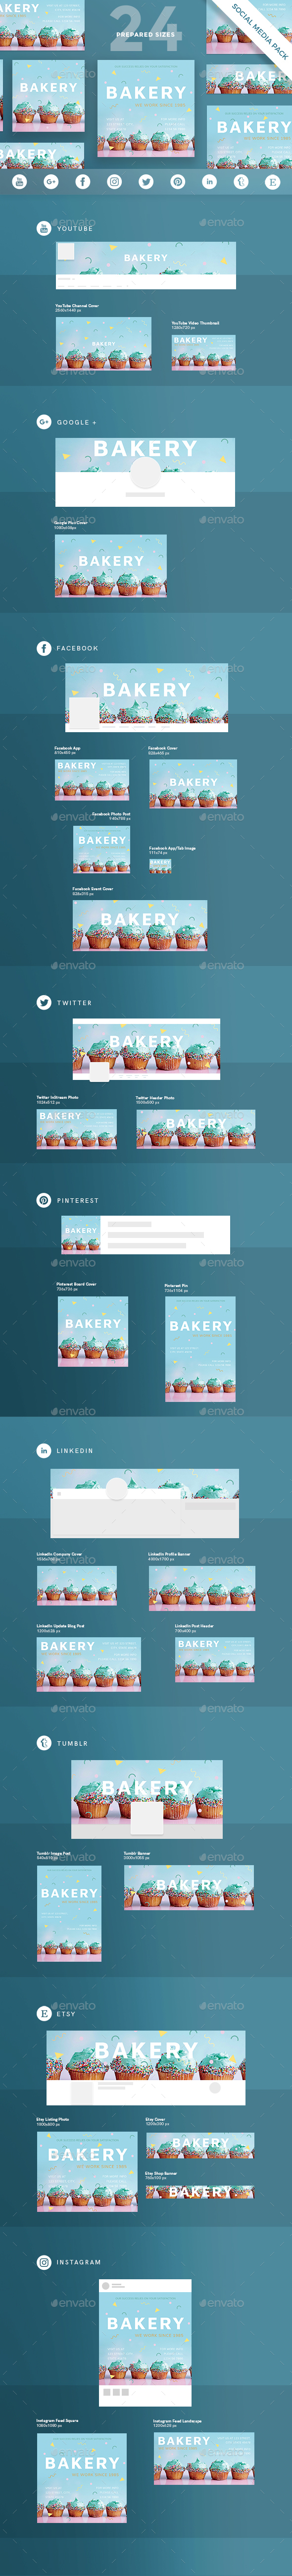 Bakery Social Media Pack - Miscellaneous Social Media